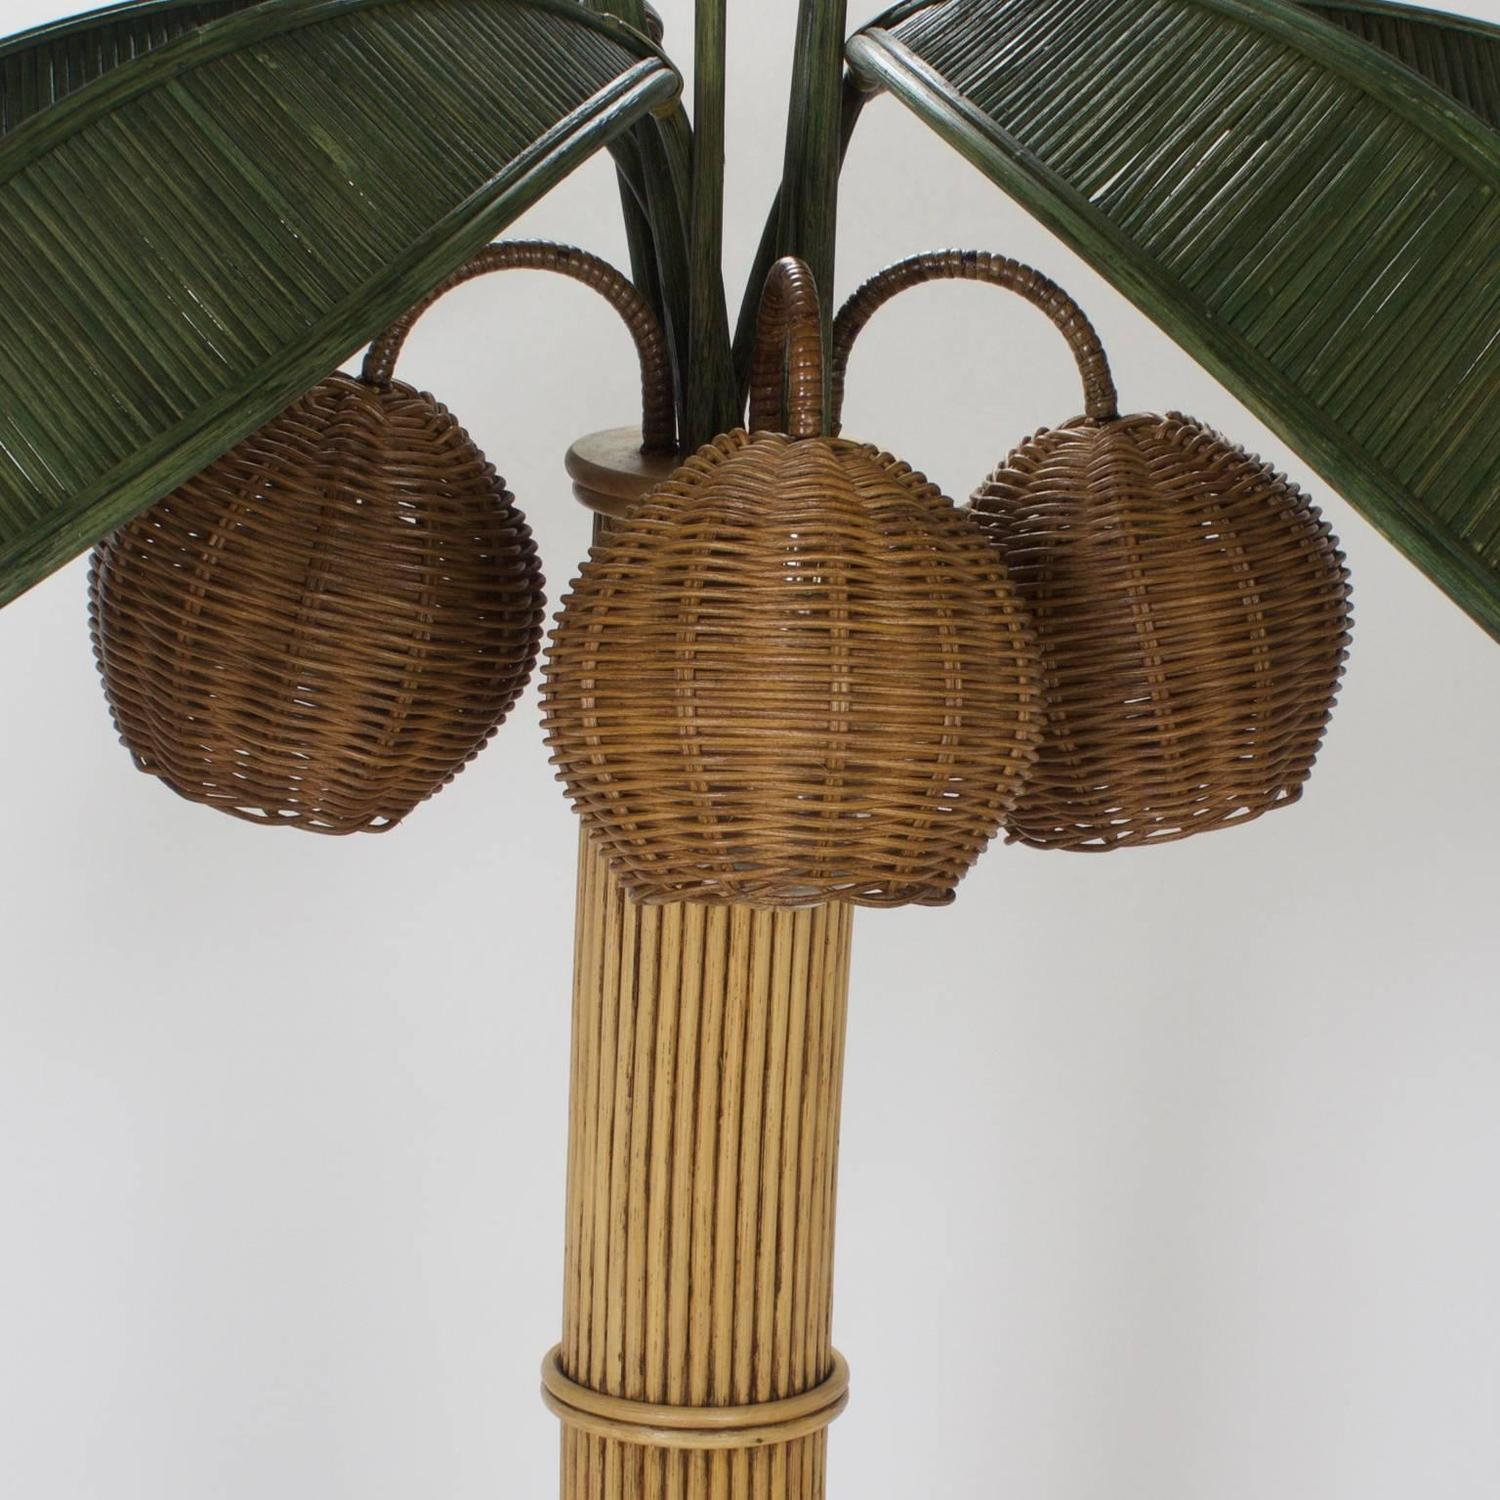 Stylized Reed Palm Tree Floor Lamp For Sale at 1stdibs